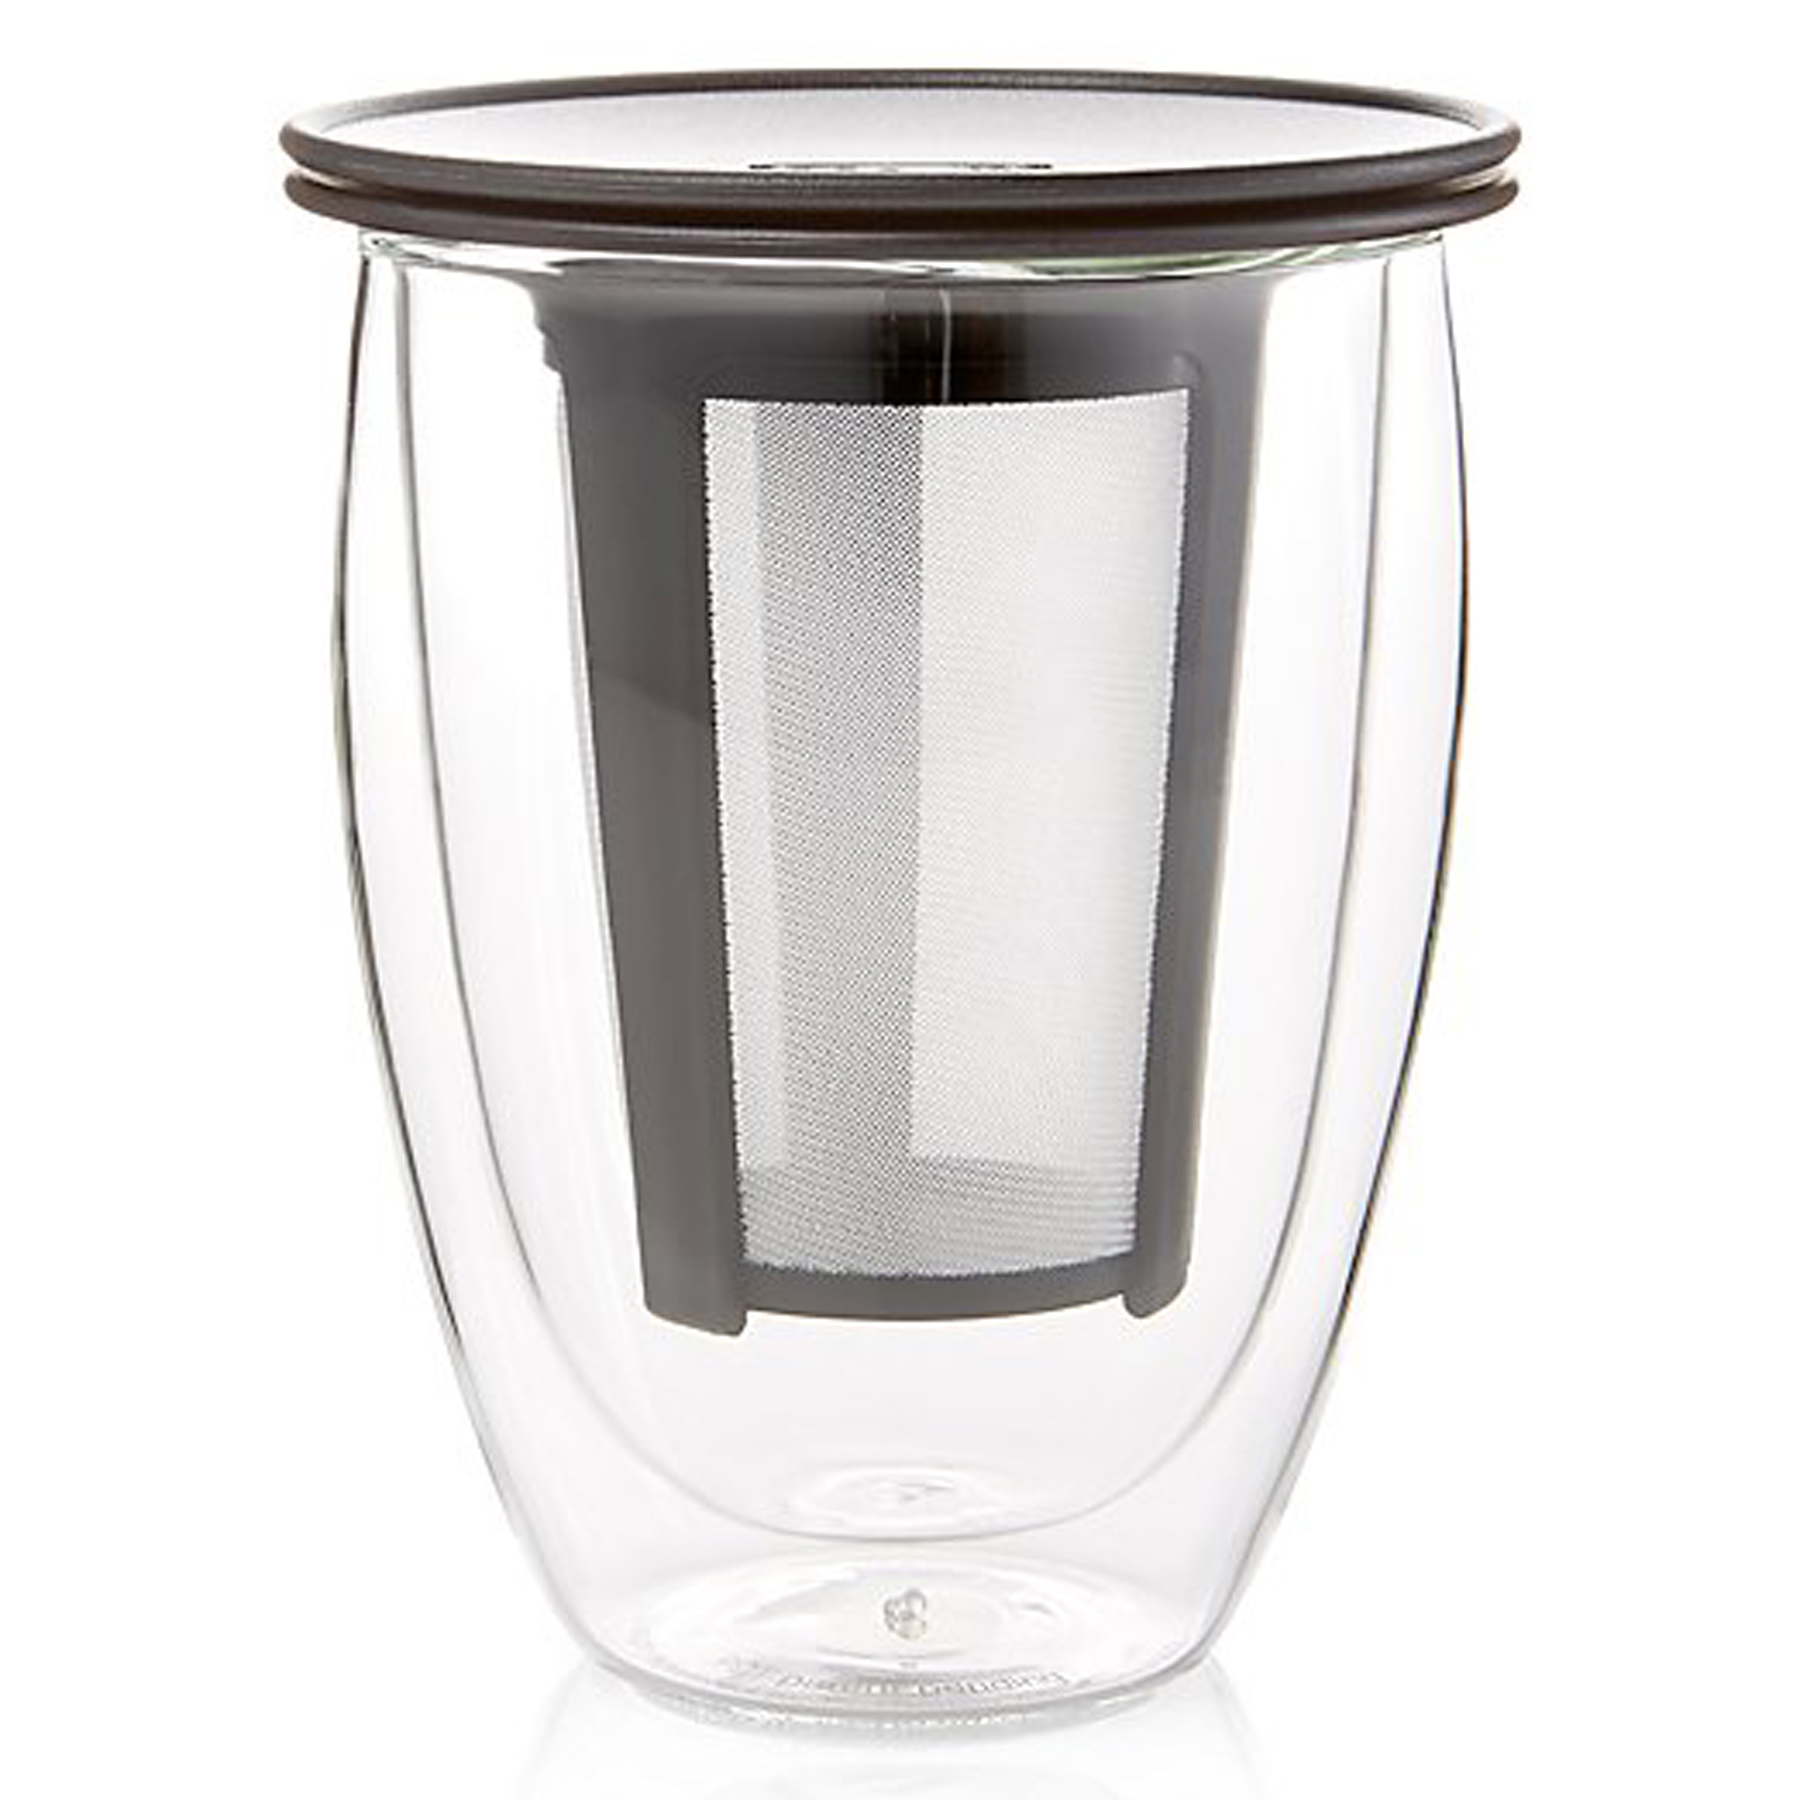 Bodum Tea For One glass tea tumbler with strainer